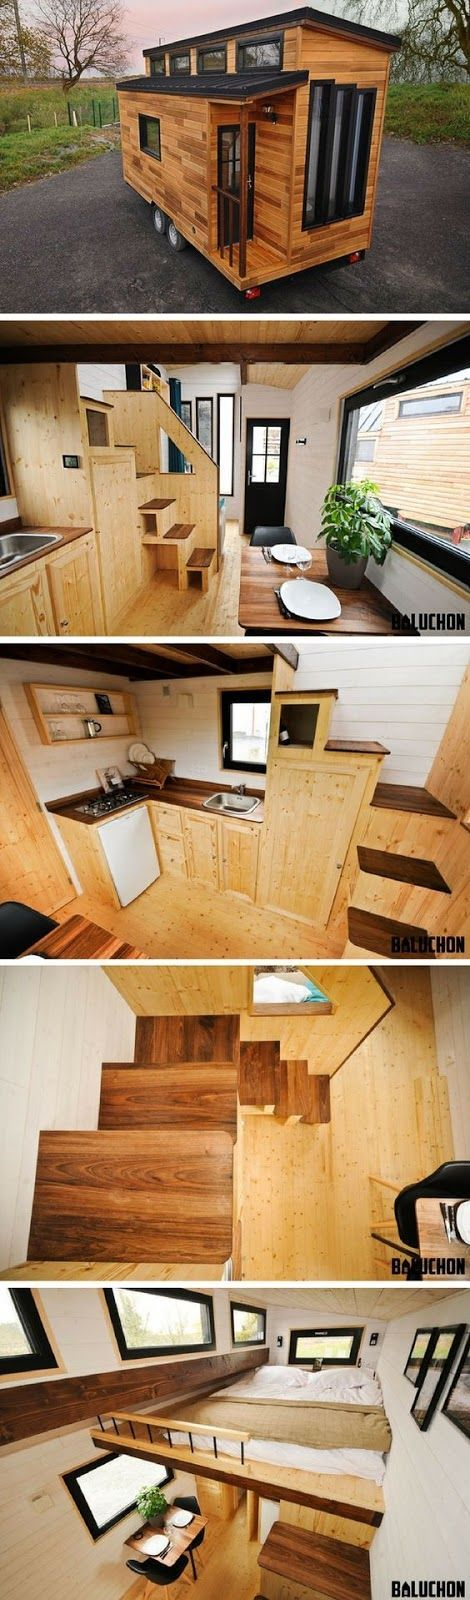 This fabulous, modern tiny house on wheels is named the Escapade. It measures just 185 sq ft between its loft and ground floor. Ch...